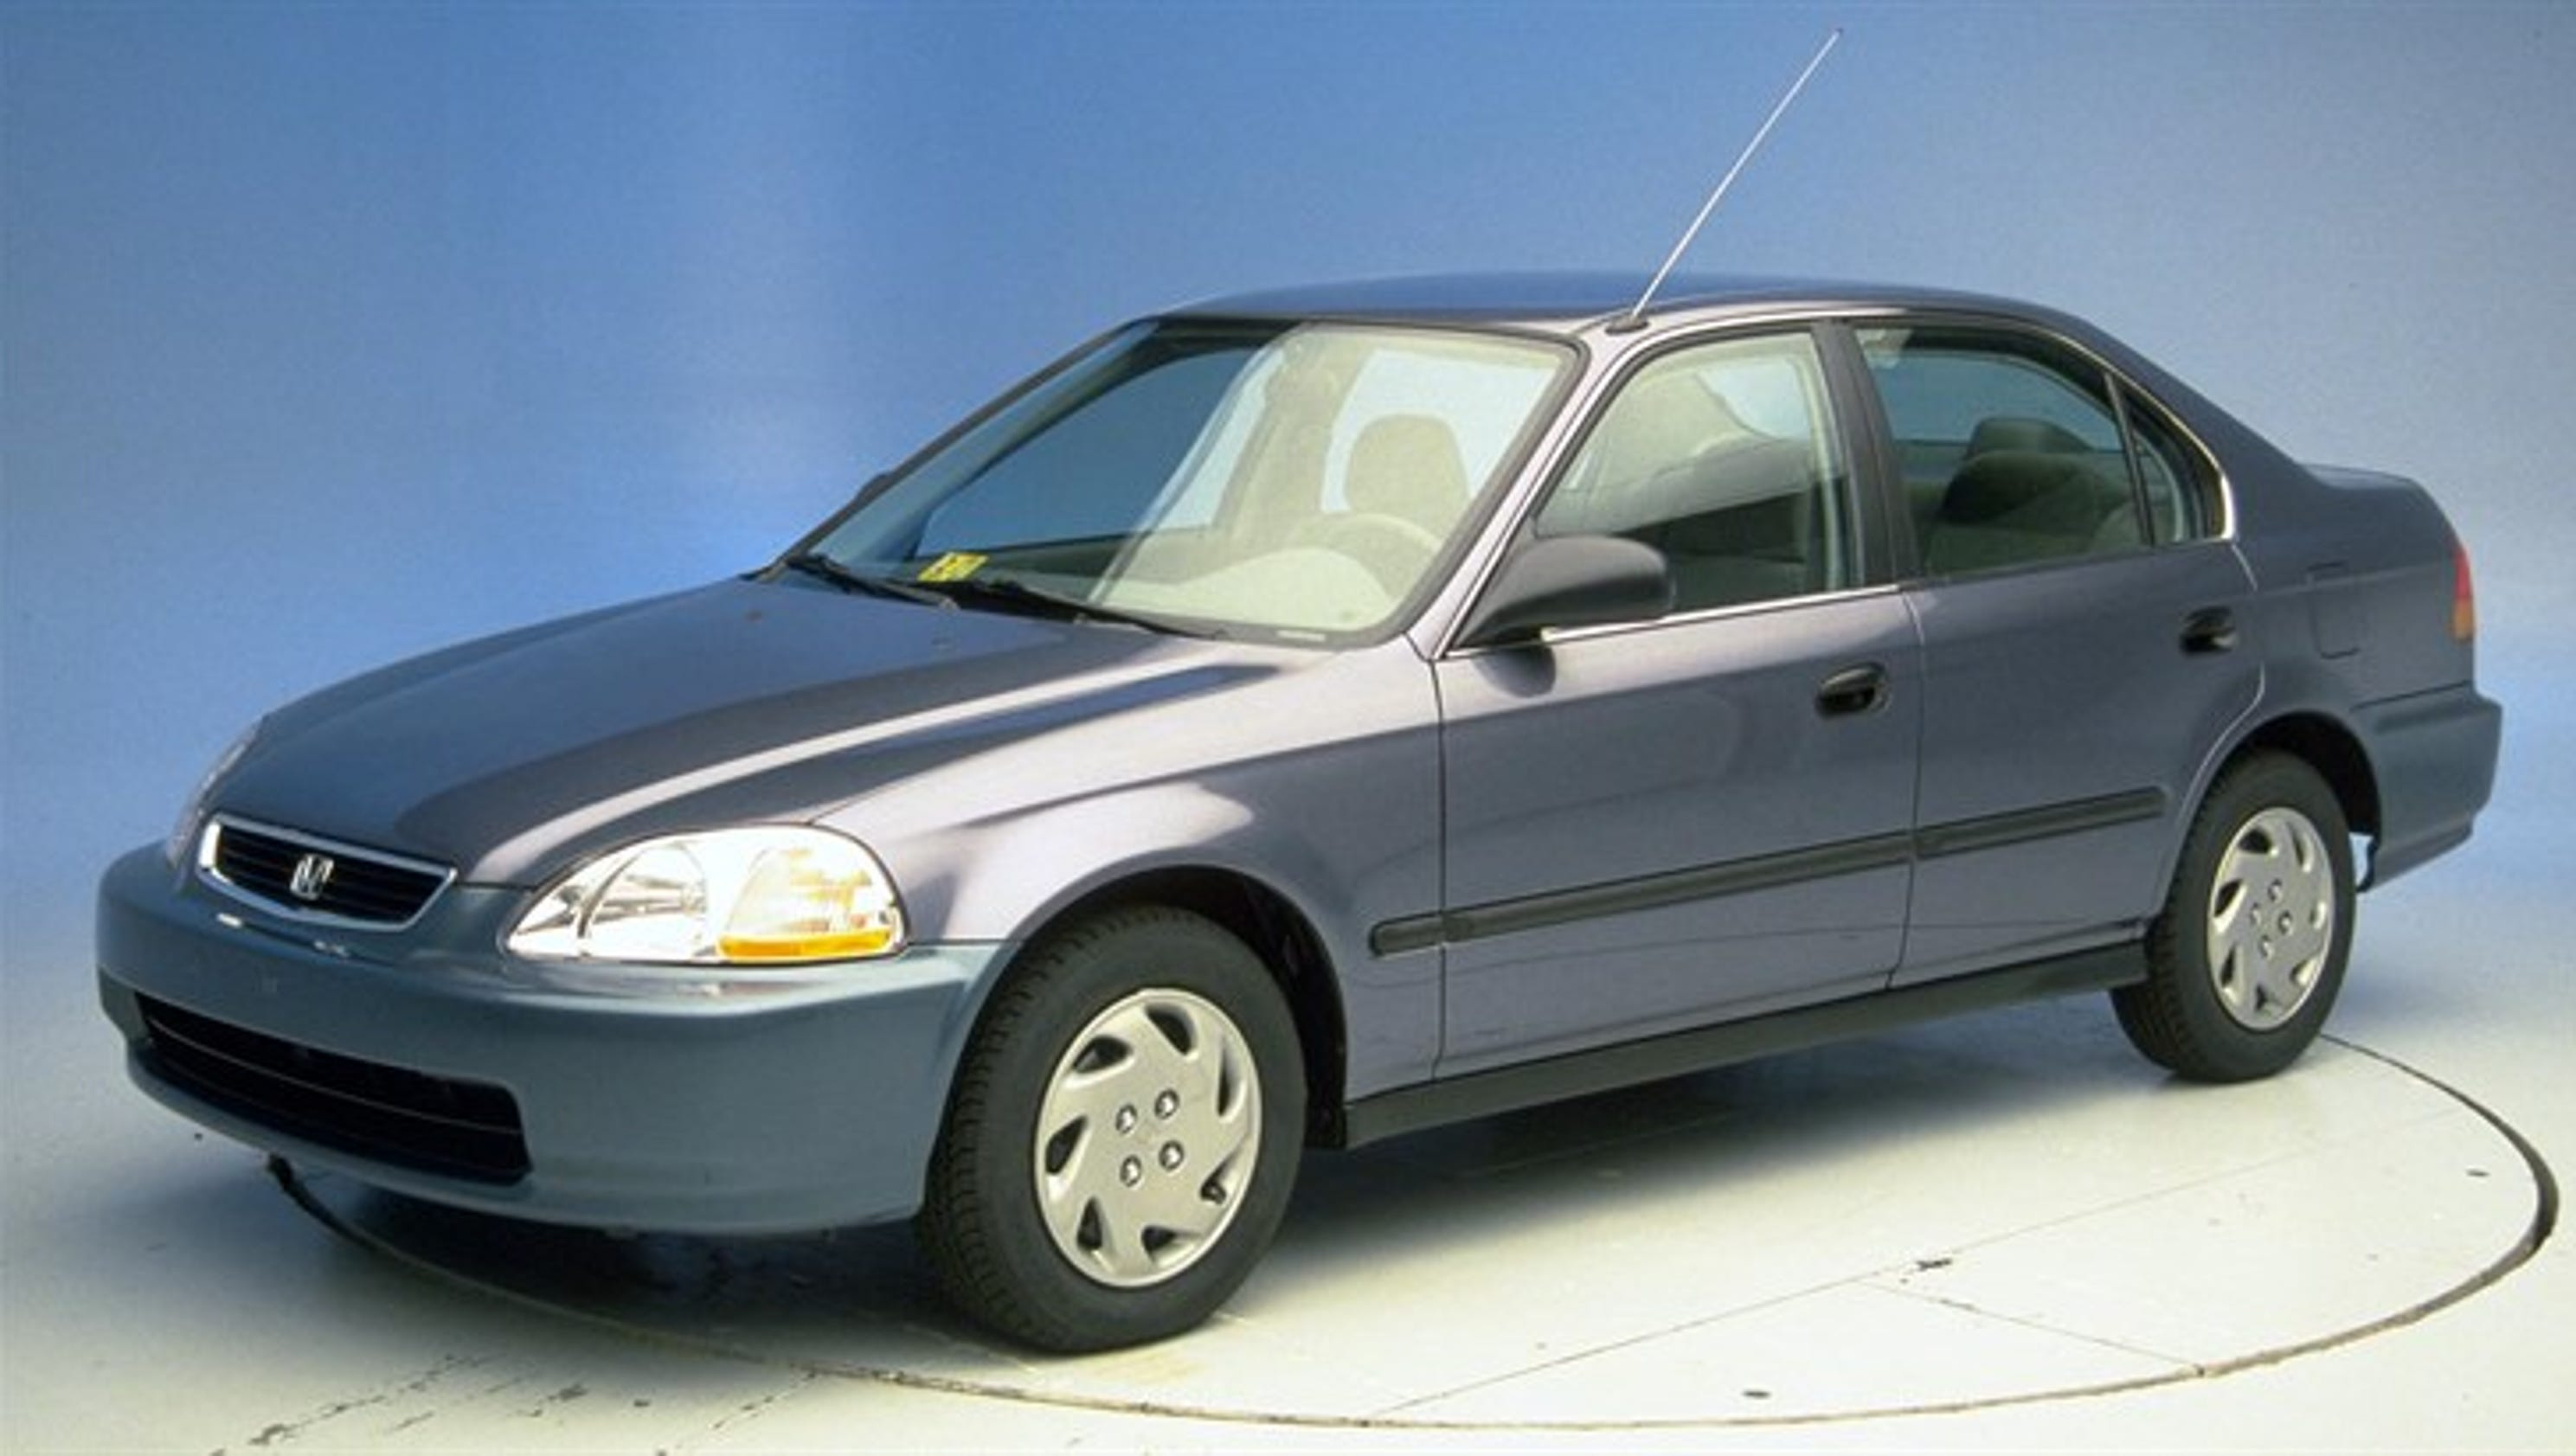 This '90s Honda Civic the most stolen car in Colorado